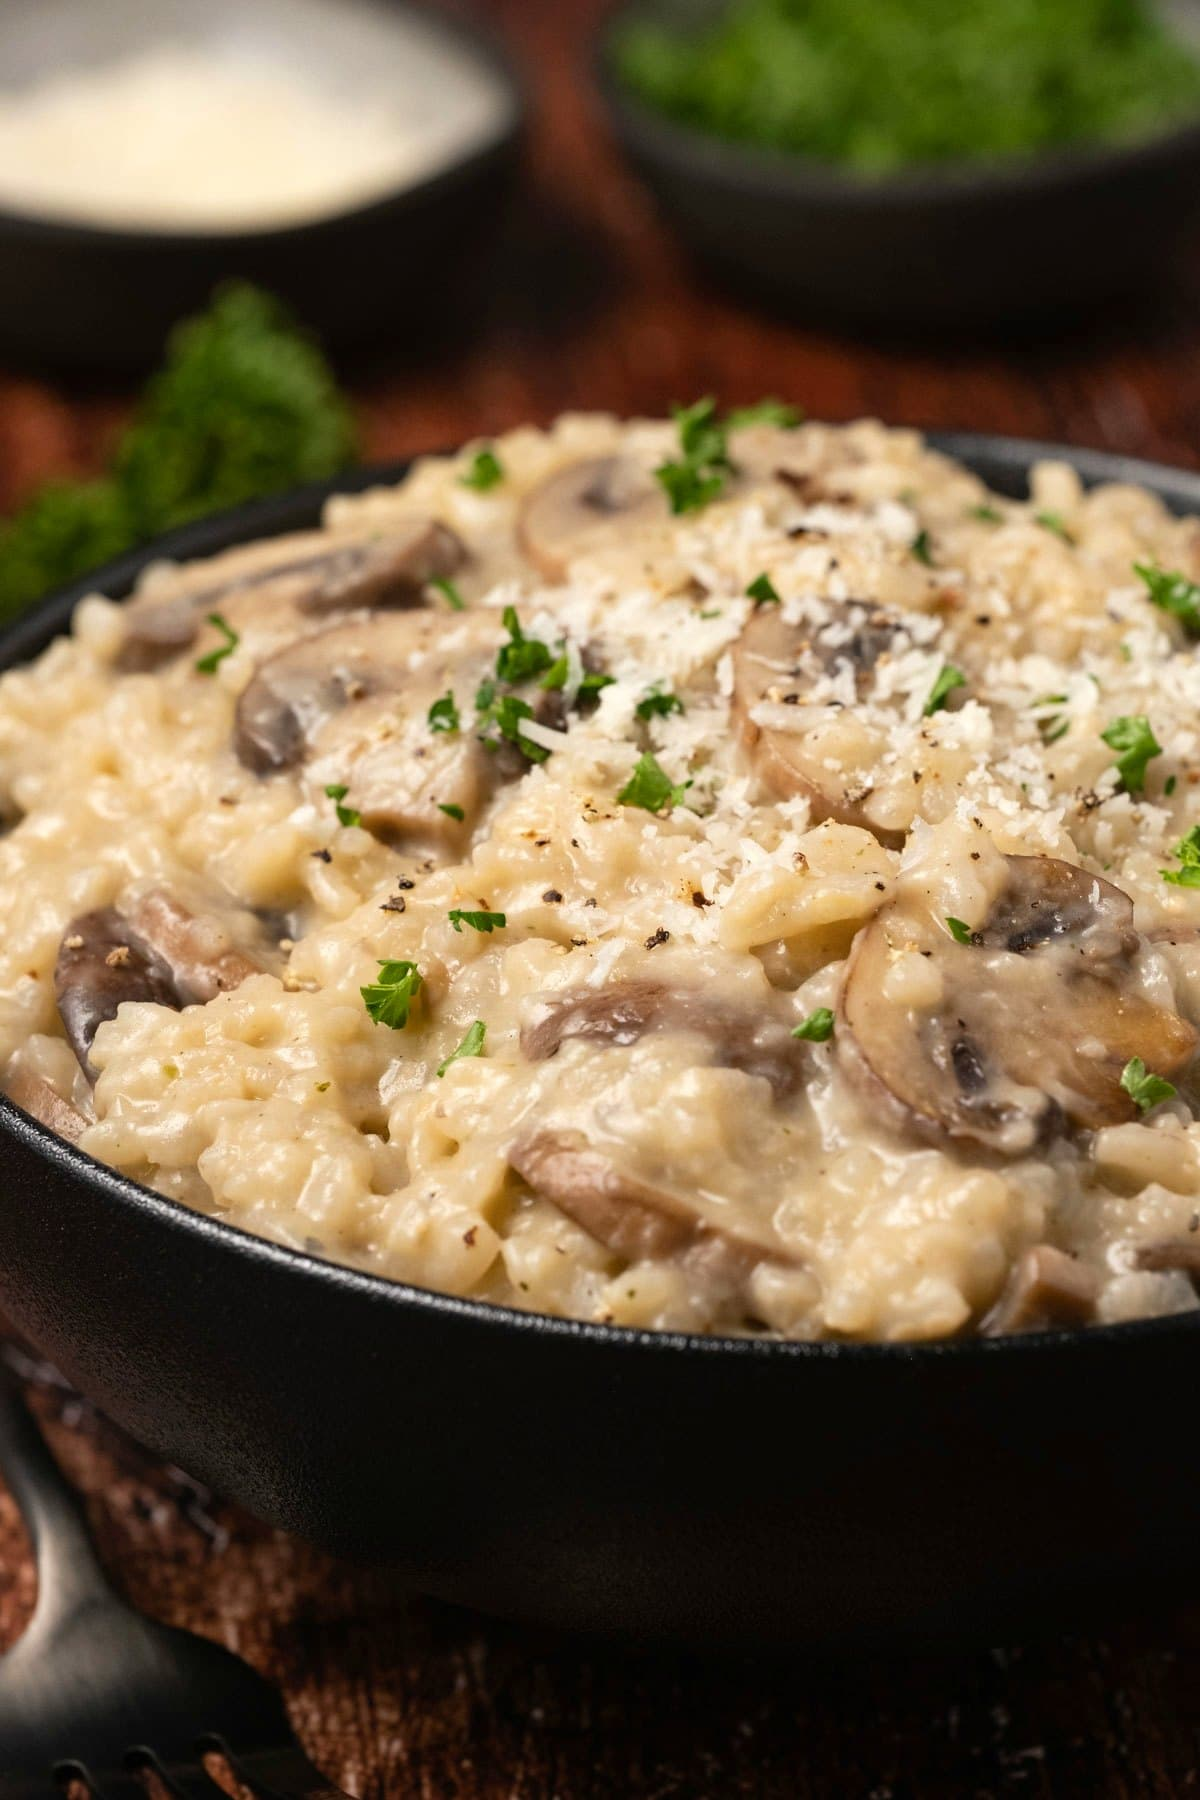 Risotto topped with grated parmesan in a black bowl.